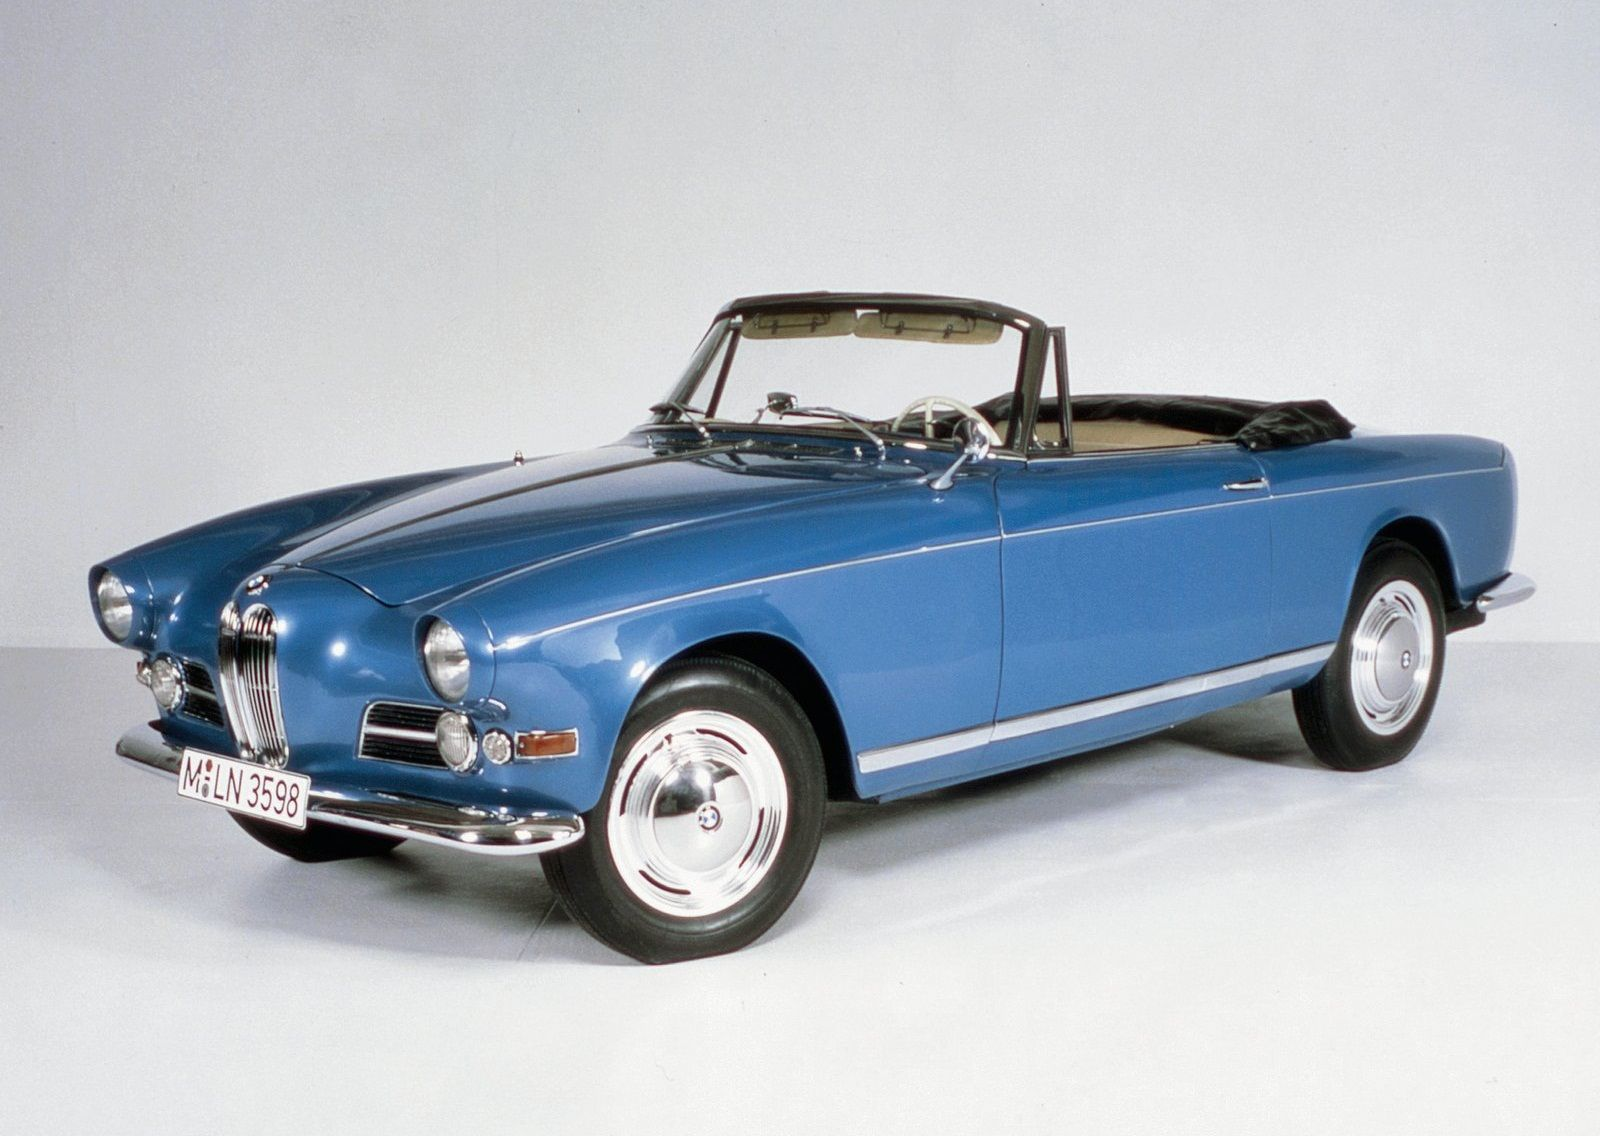 bmw 503 cabriolet is one of the best producers description from bmw 503 cabriolet is one of the best producers description from motoburg com